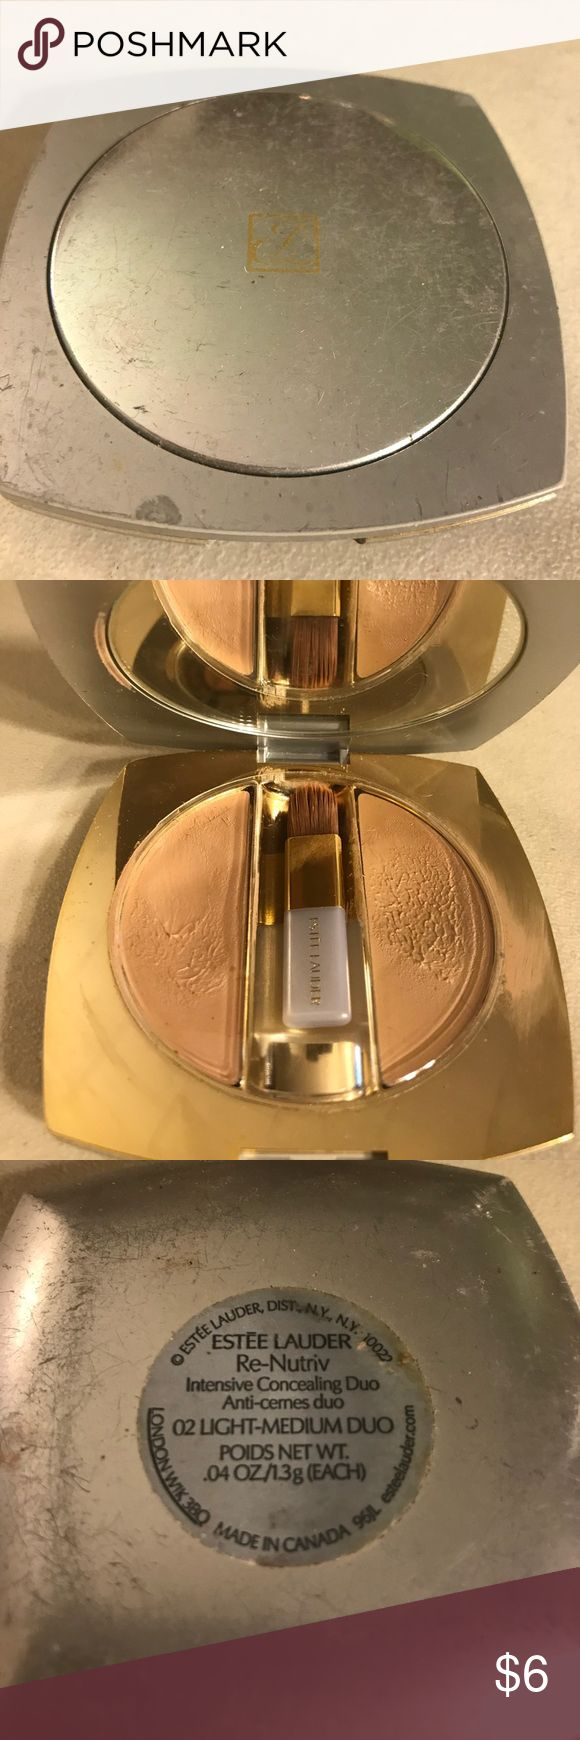 Estée Lauder re-nutriv intensive concealing duo Estée Lauder re-nutriv intensive concealing duo in color 02 light- medium duo, used. Thanks for checking out Luxury1cosmetics!! Offers are welcomed, bundles are discounted!! Estee Lauder Makeup Concealer